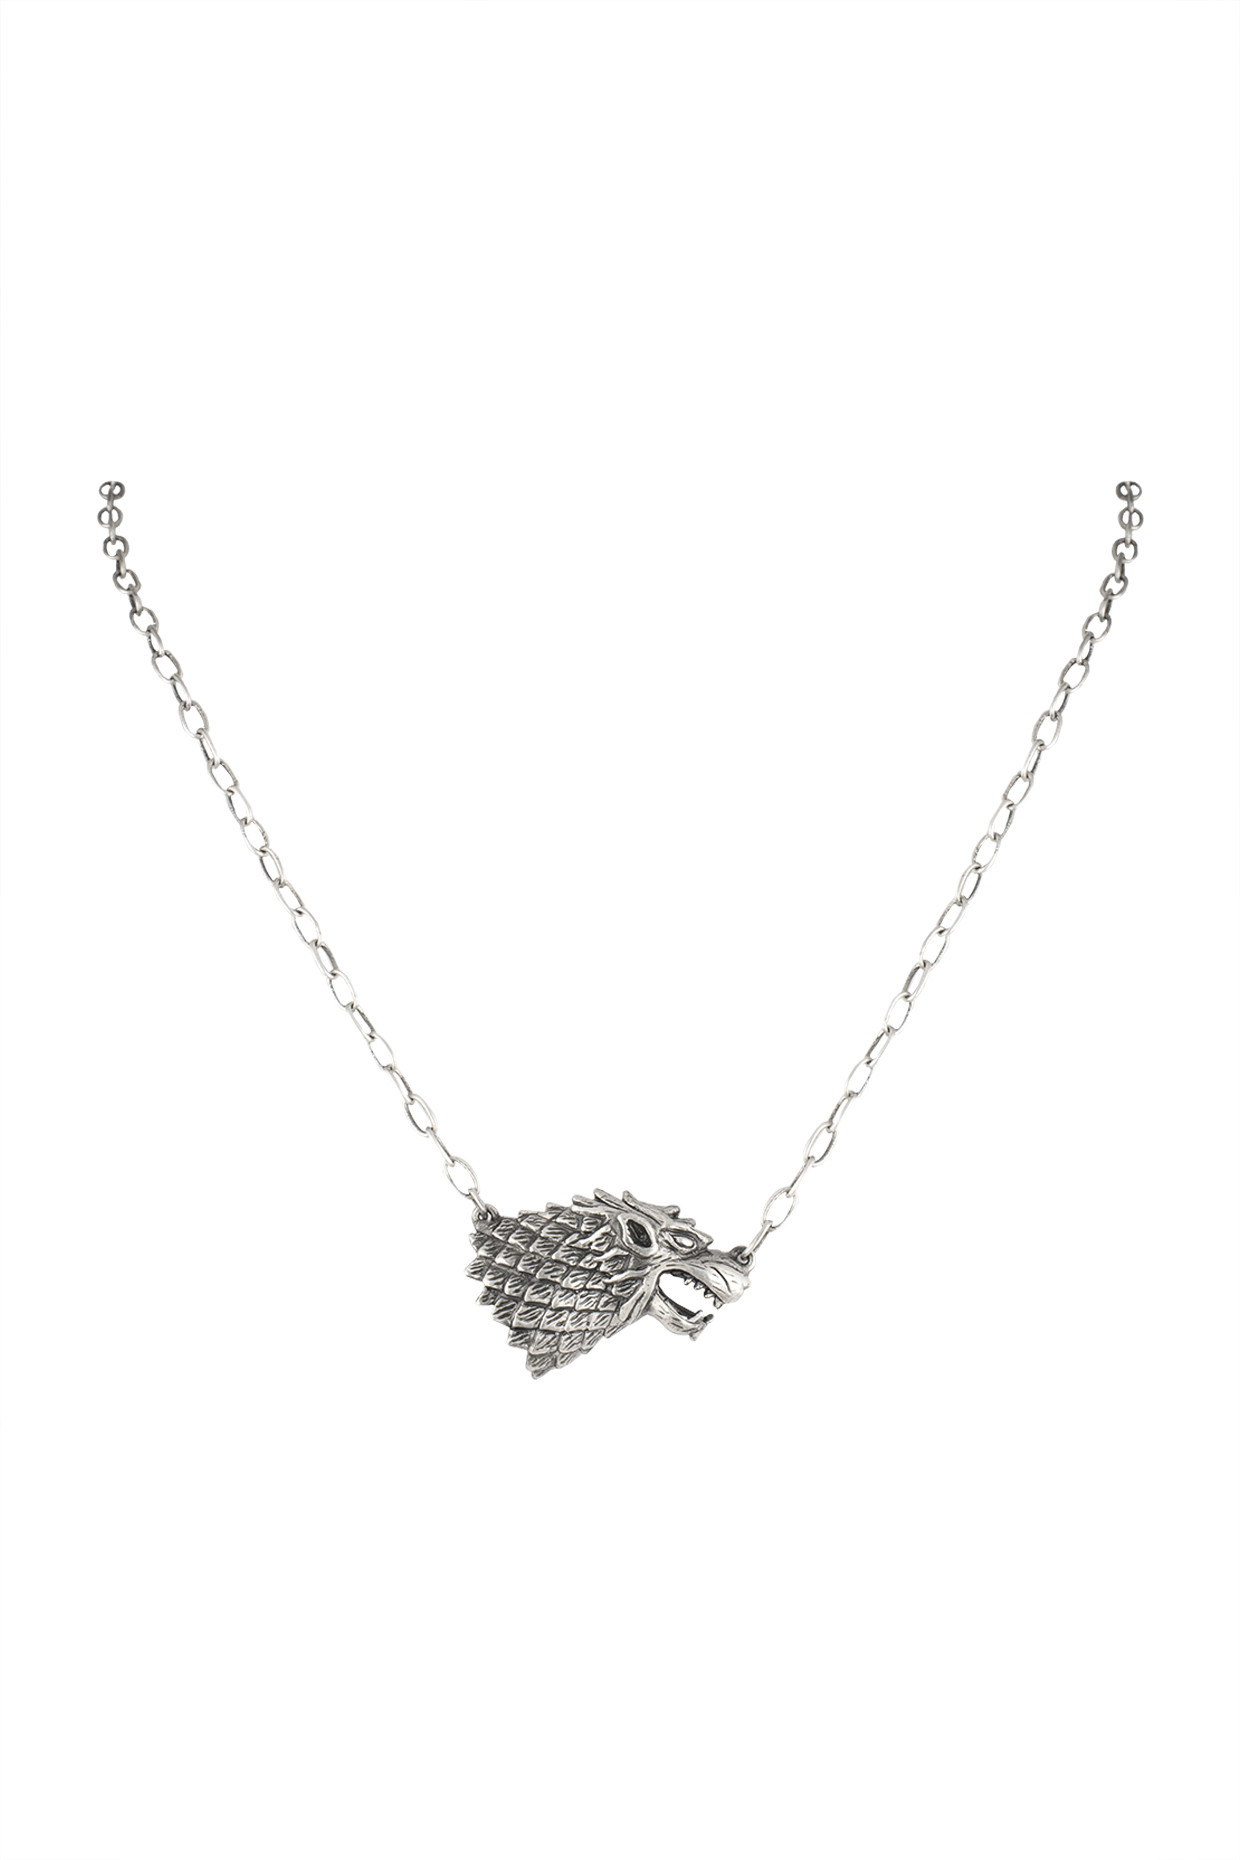 Silver Finish Rise Of The Lone Wolf Chain Necklace by Masaba Jewellery